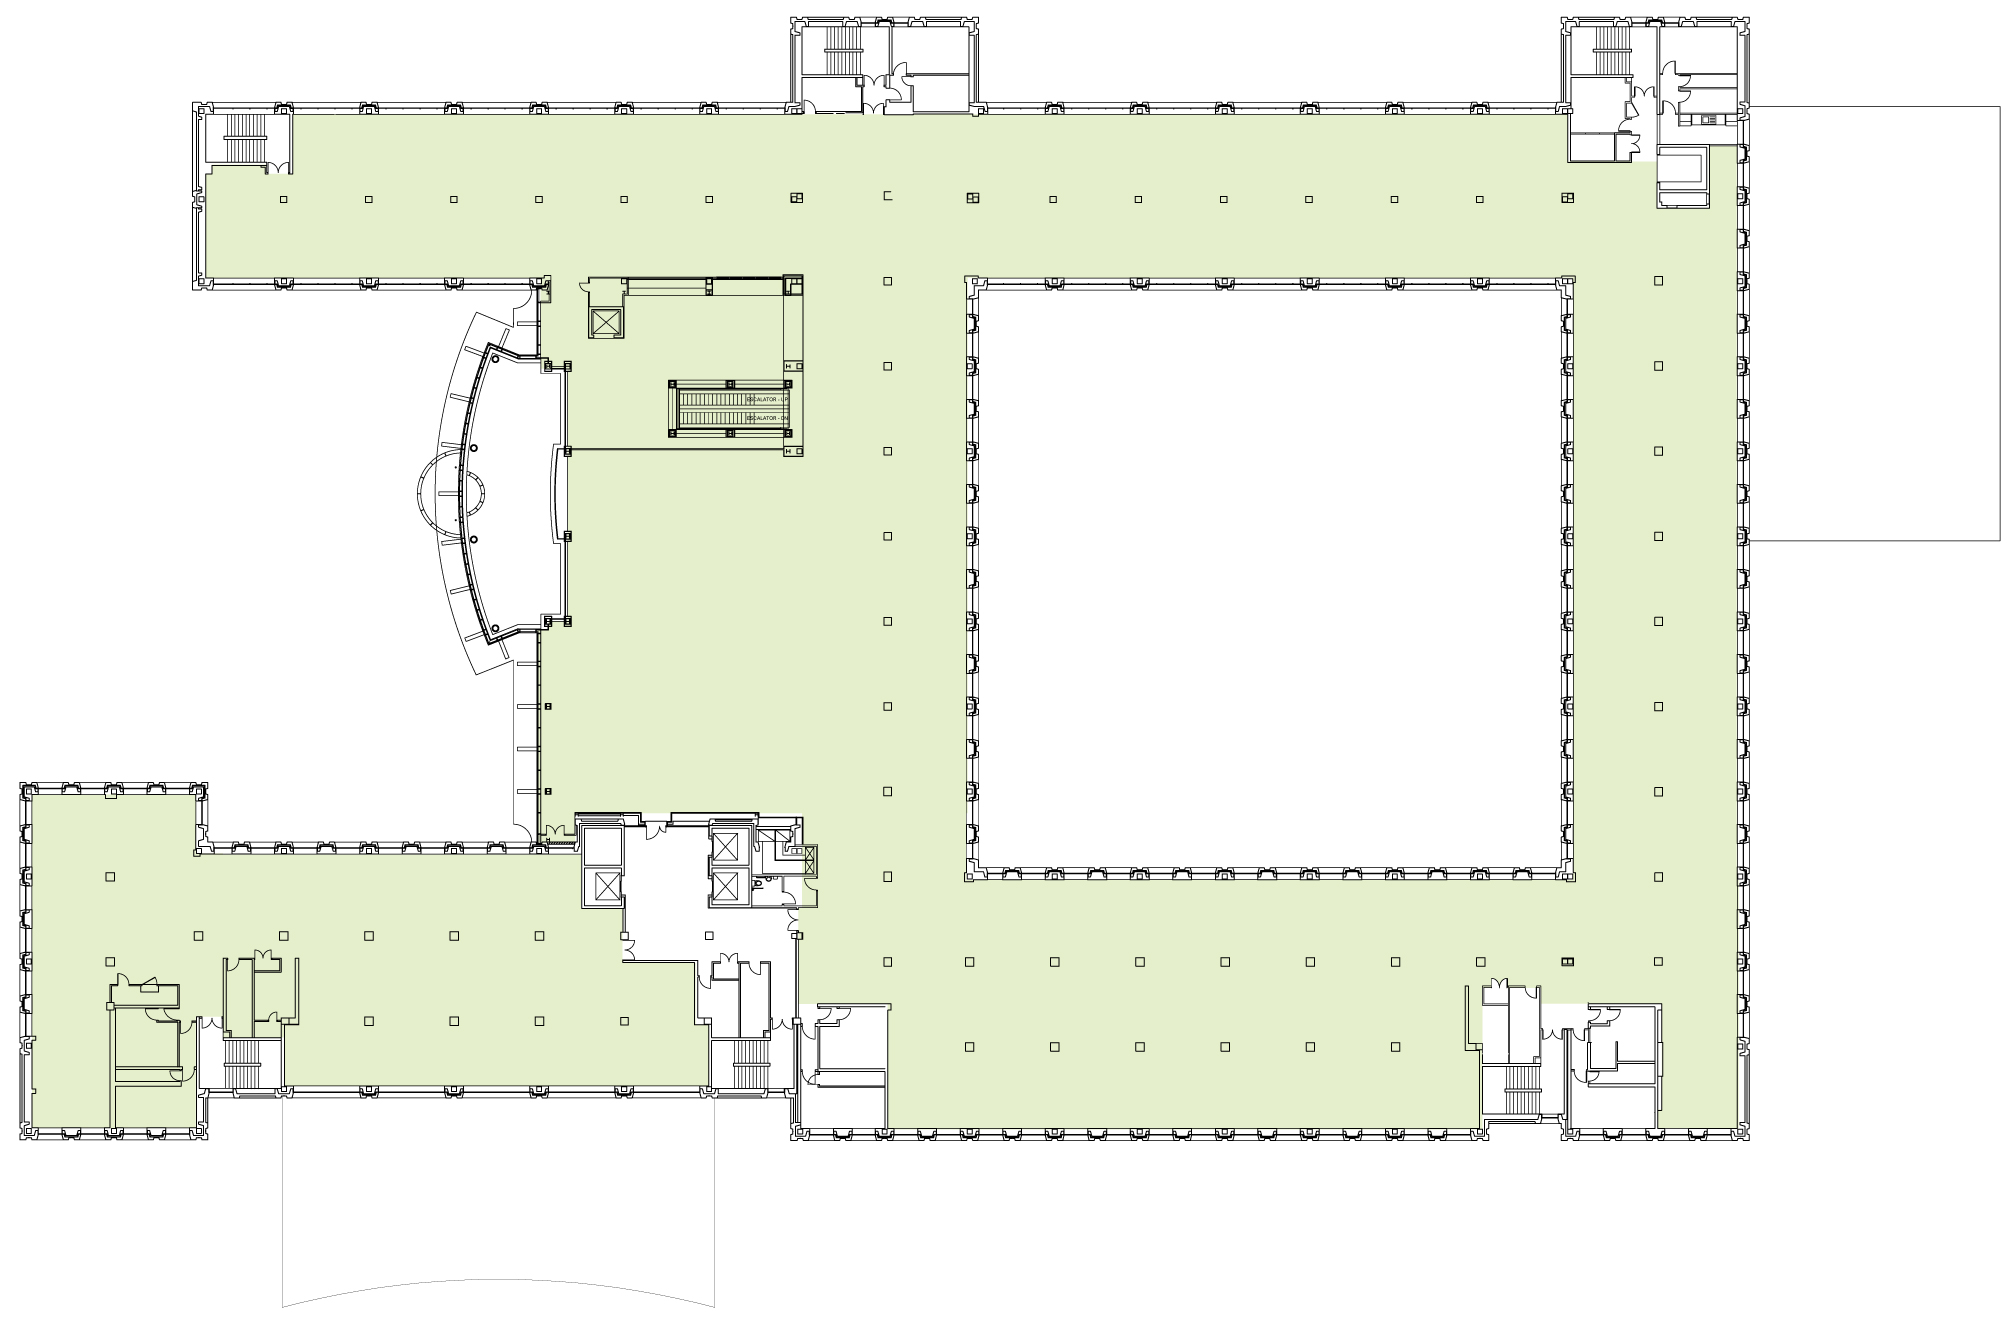 First Floor - 46,590 sq ft (432 people)